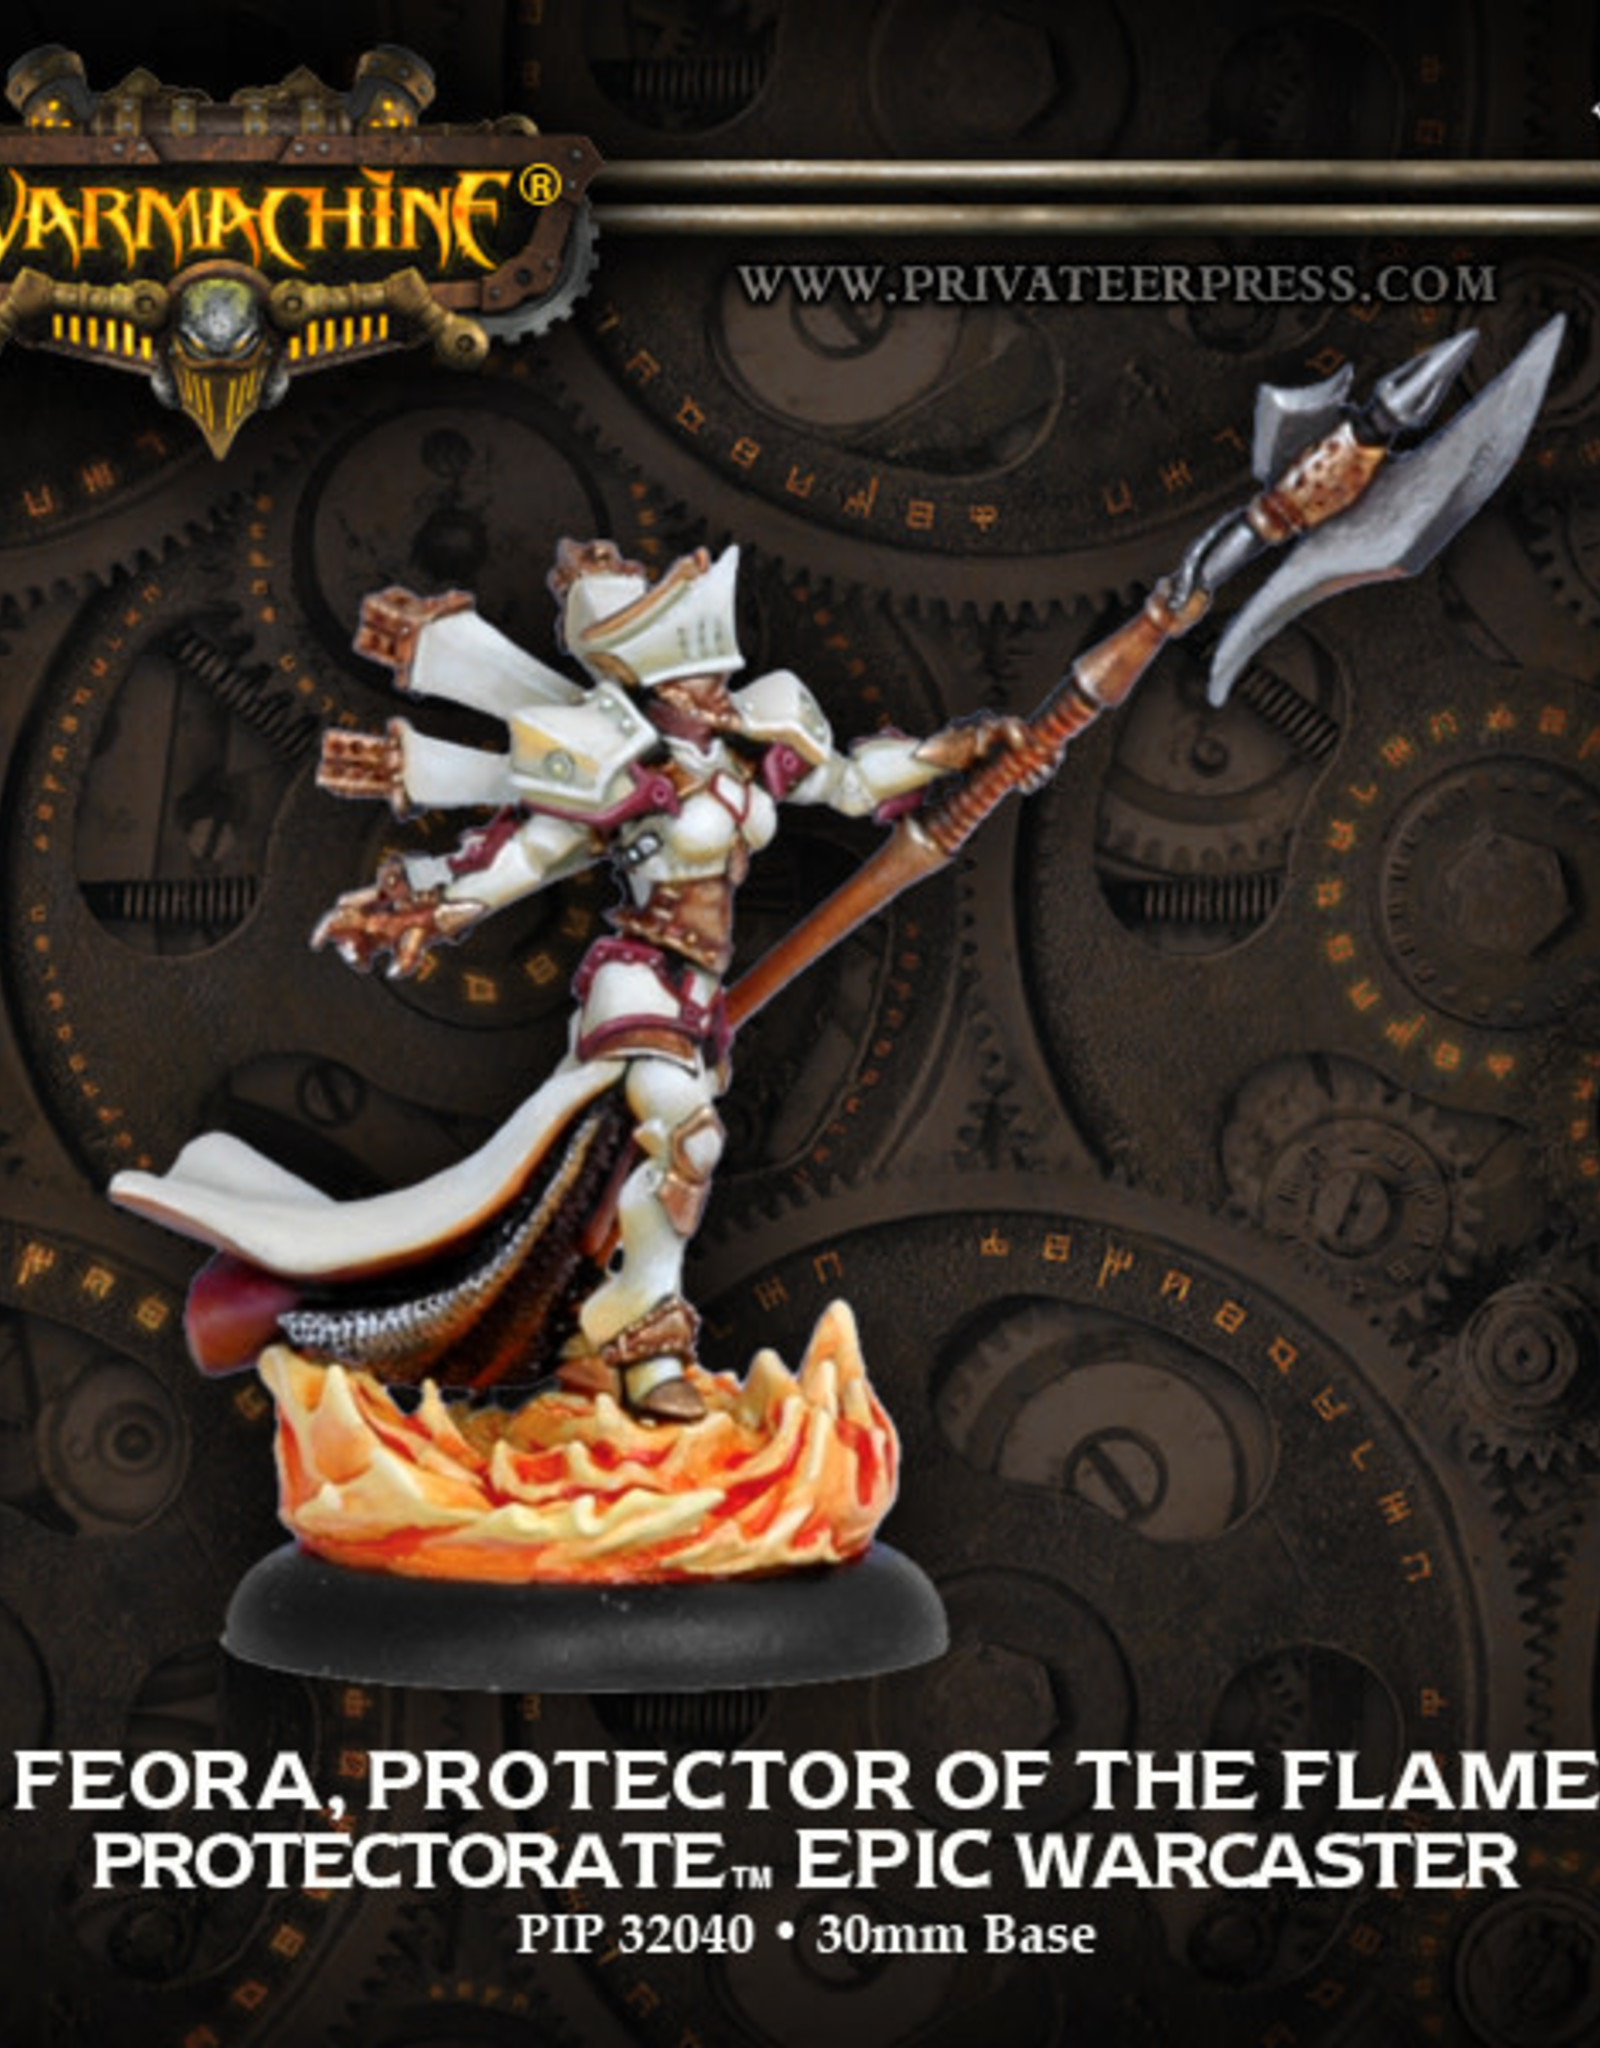 Warmachine Protectorate - Feora, Protector of the Flame